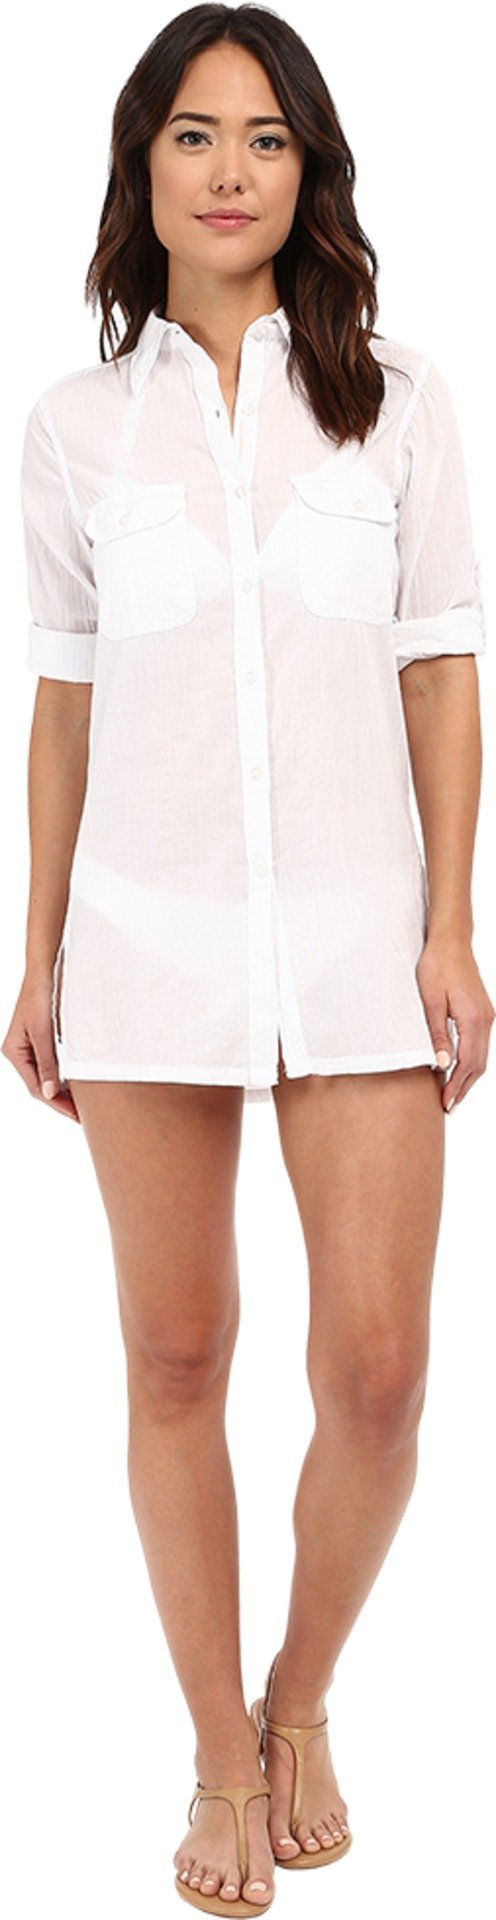 LAUREN Ralph Lauren Women's Crushed Cotton Camp Shirt Cover-Up White 1 Swimsuit Top